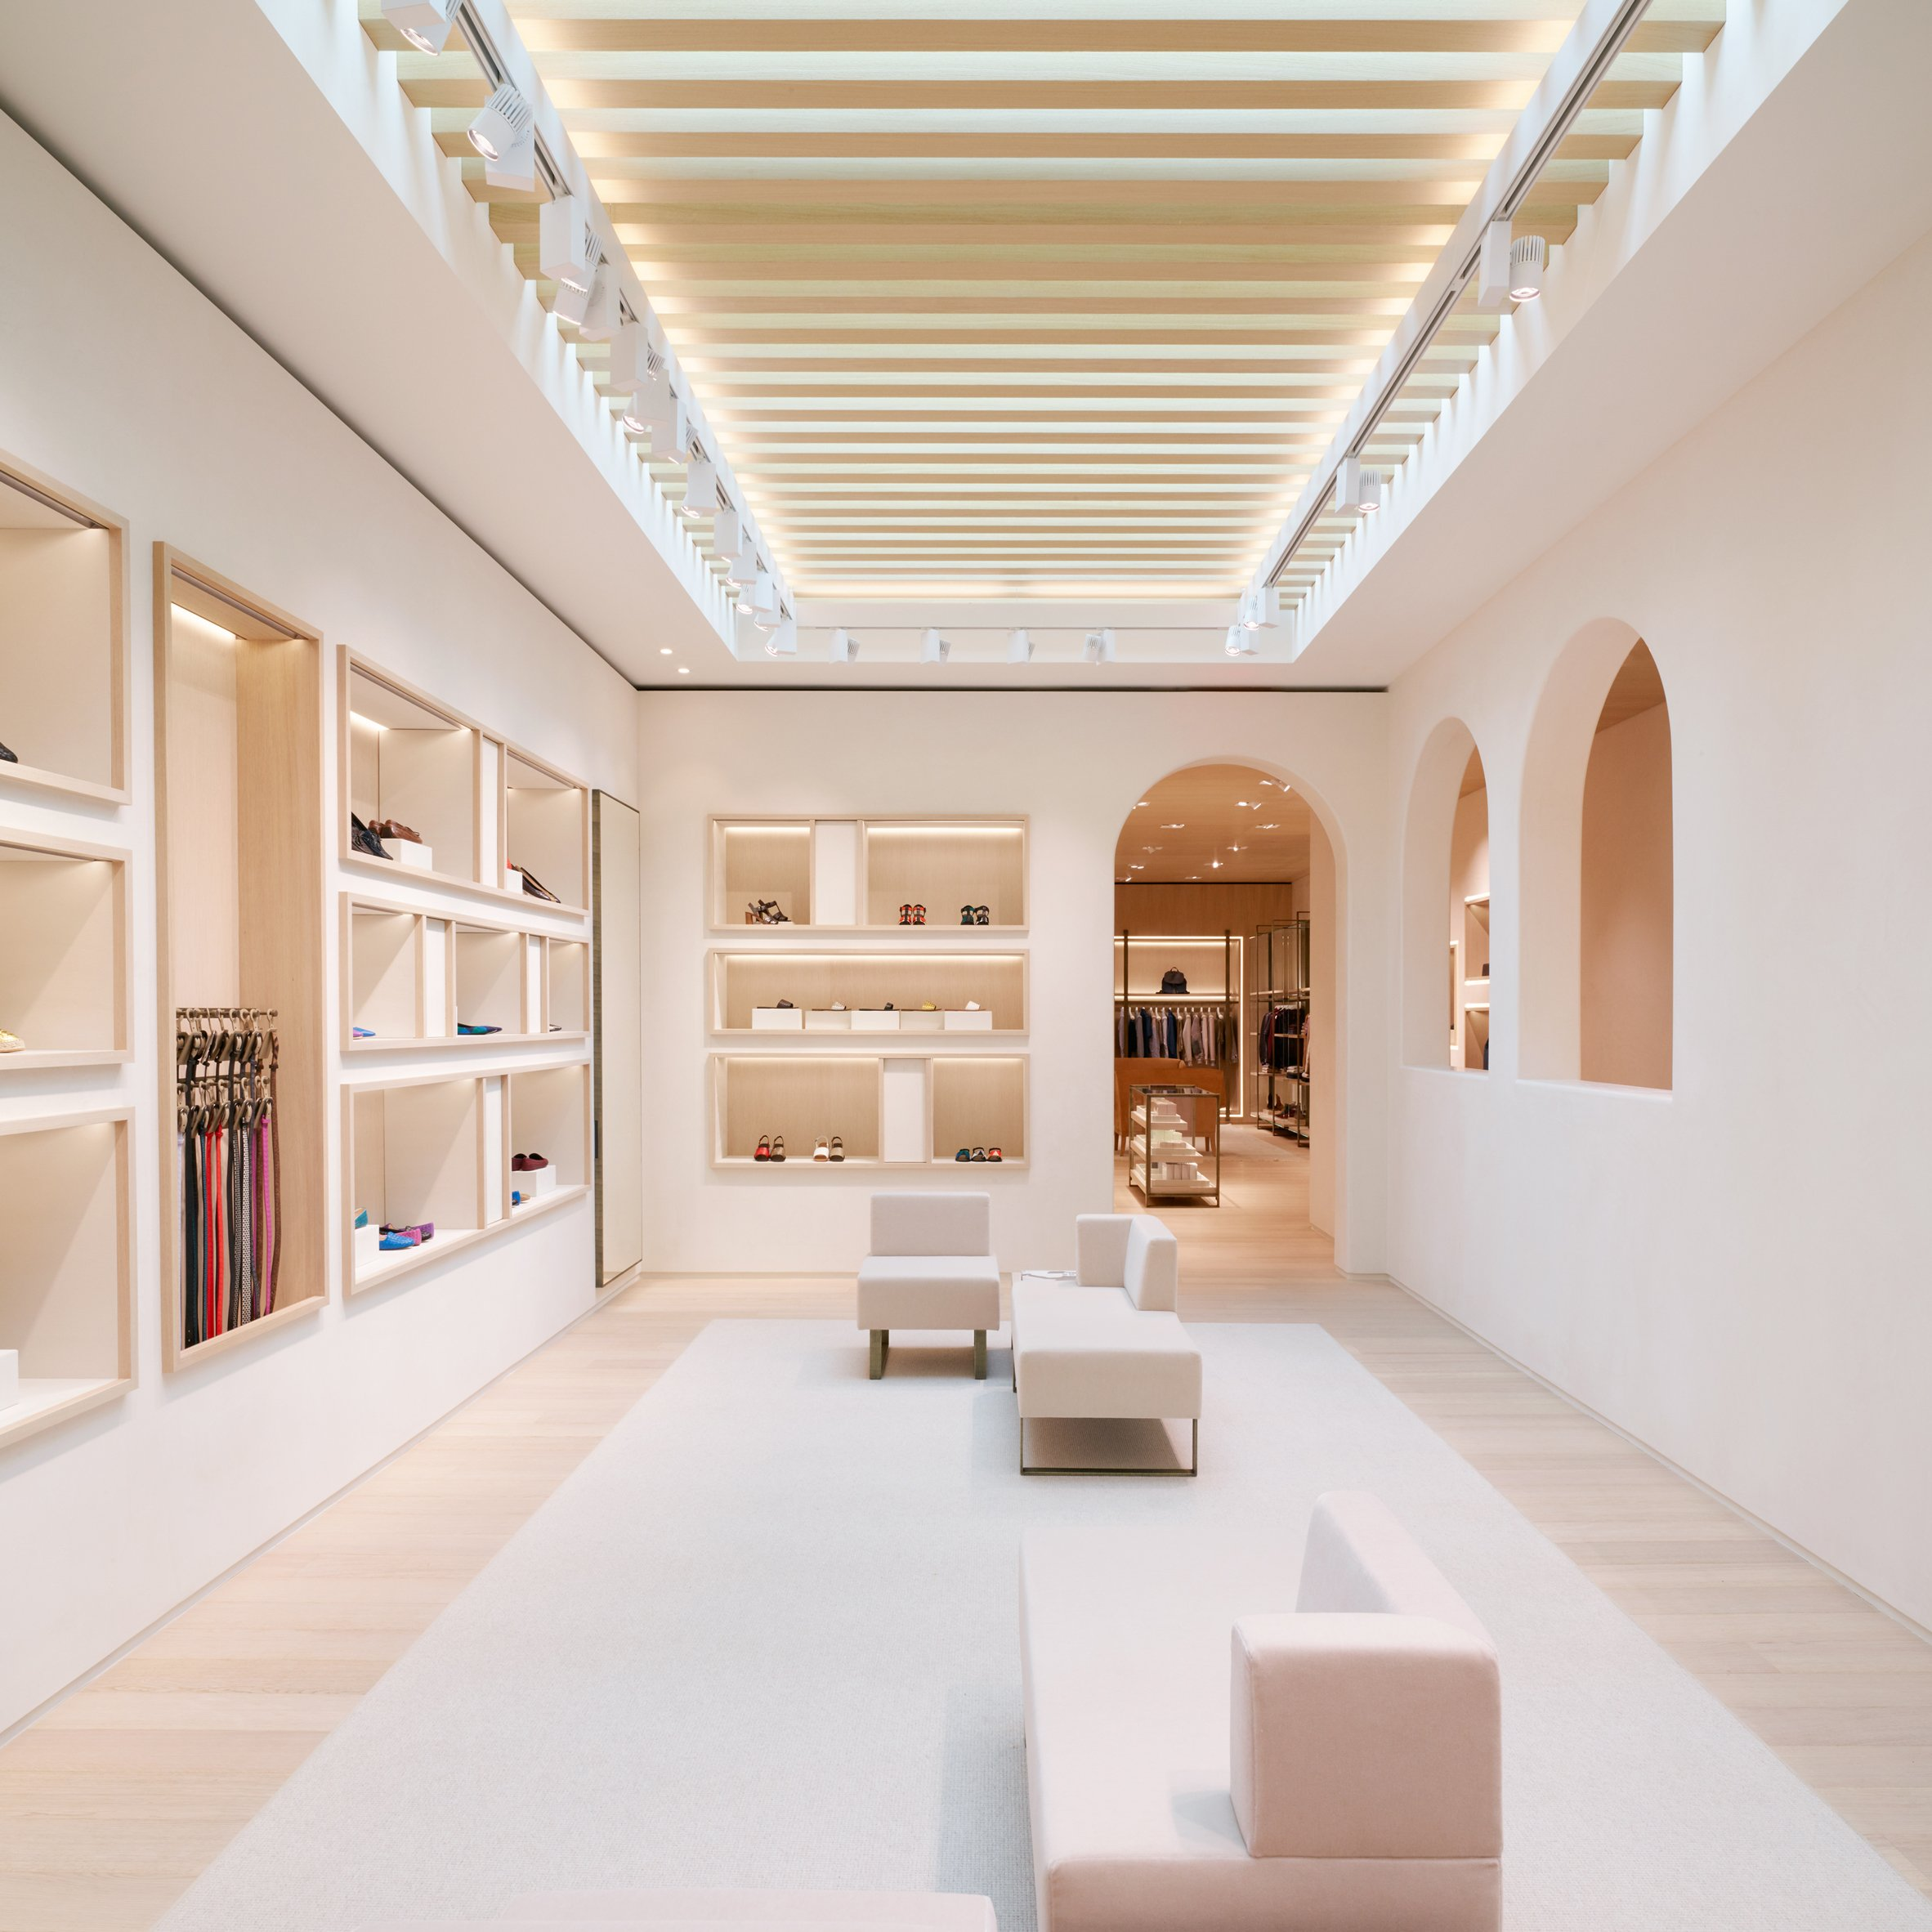 boutique architecture and interior design dezeen rh dezeen com Boutique Interior Design Ideas Boutique Hotel Interior Design